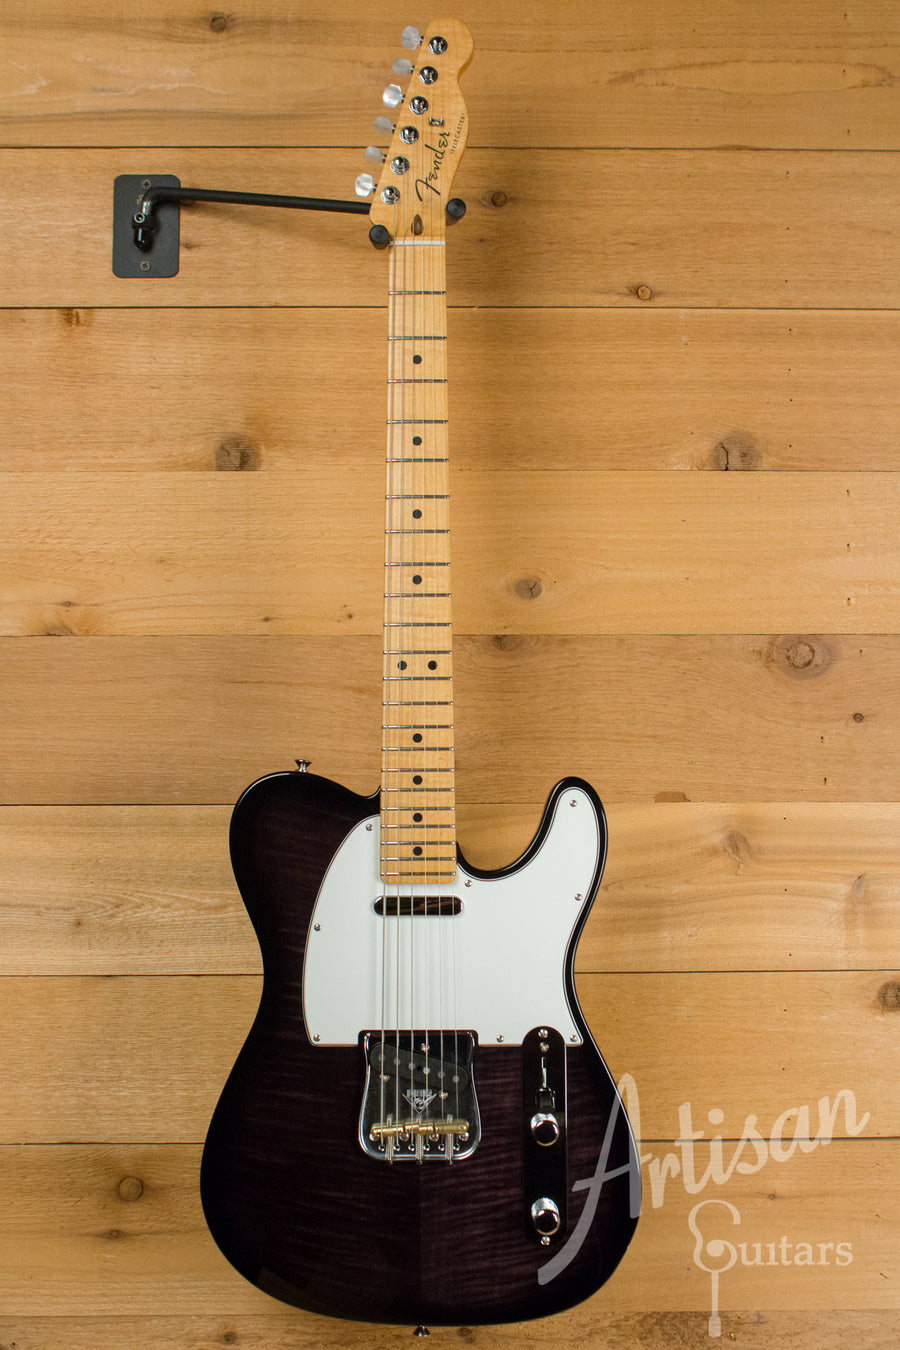 Fender Custom Shop Deluxe Tele with Transparent Ebony Finish Pre-Owned 2015 ID-10948